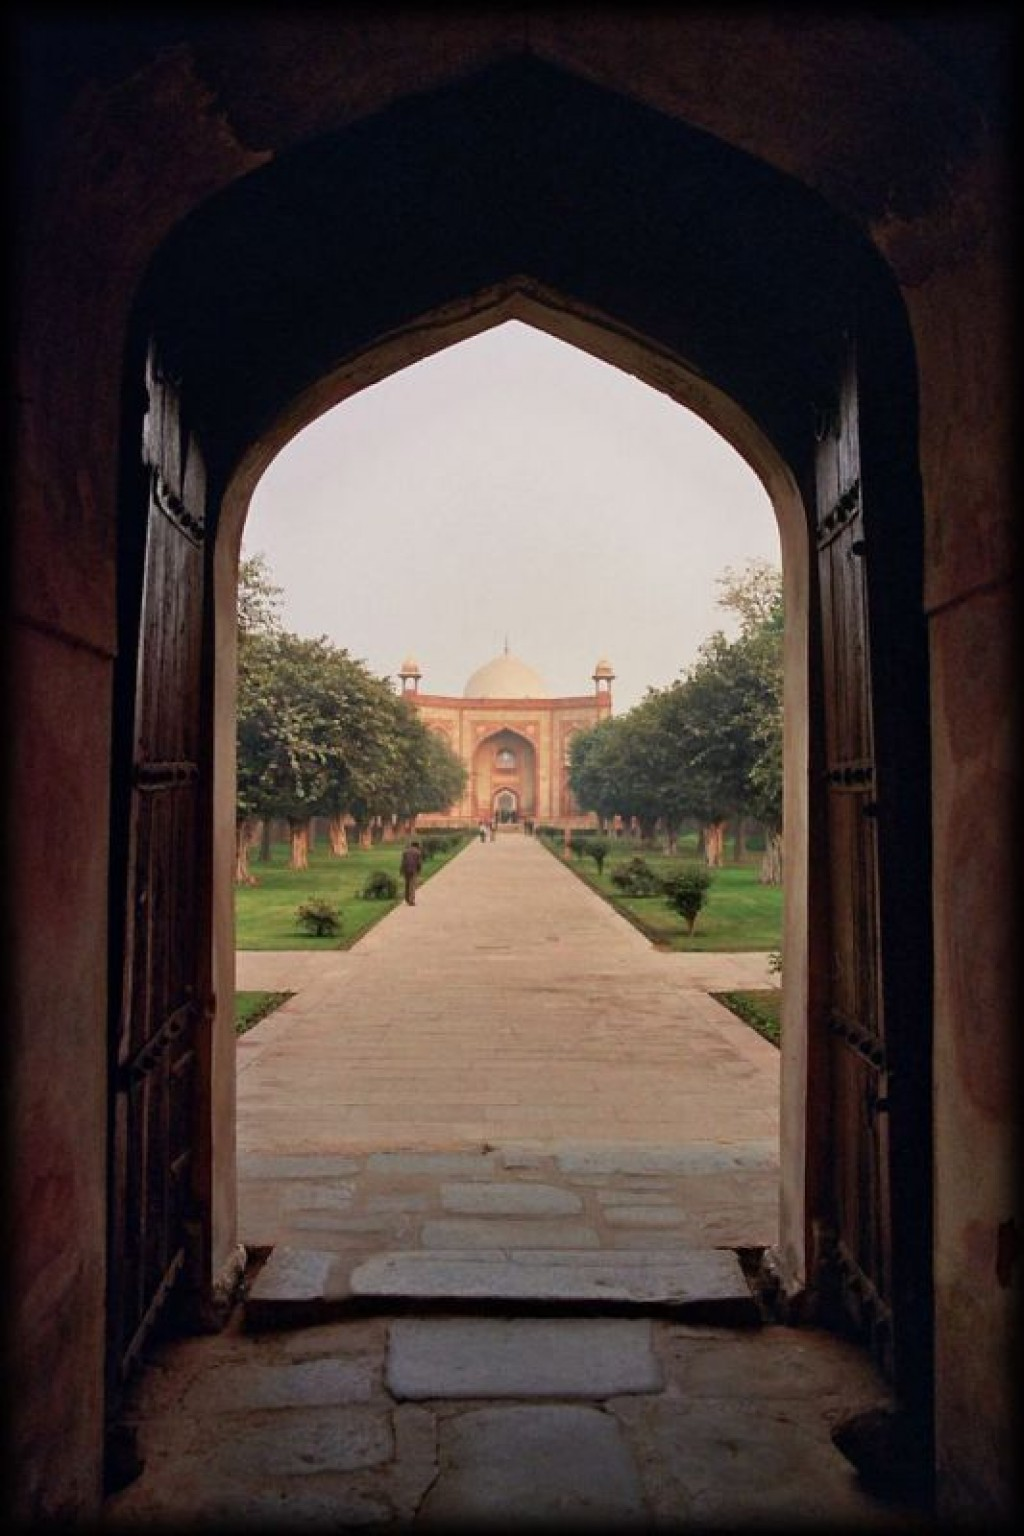 We visited Humayun's Tomb in Delhi.  It was one of our favourite sights.